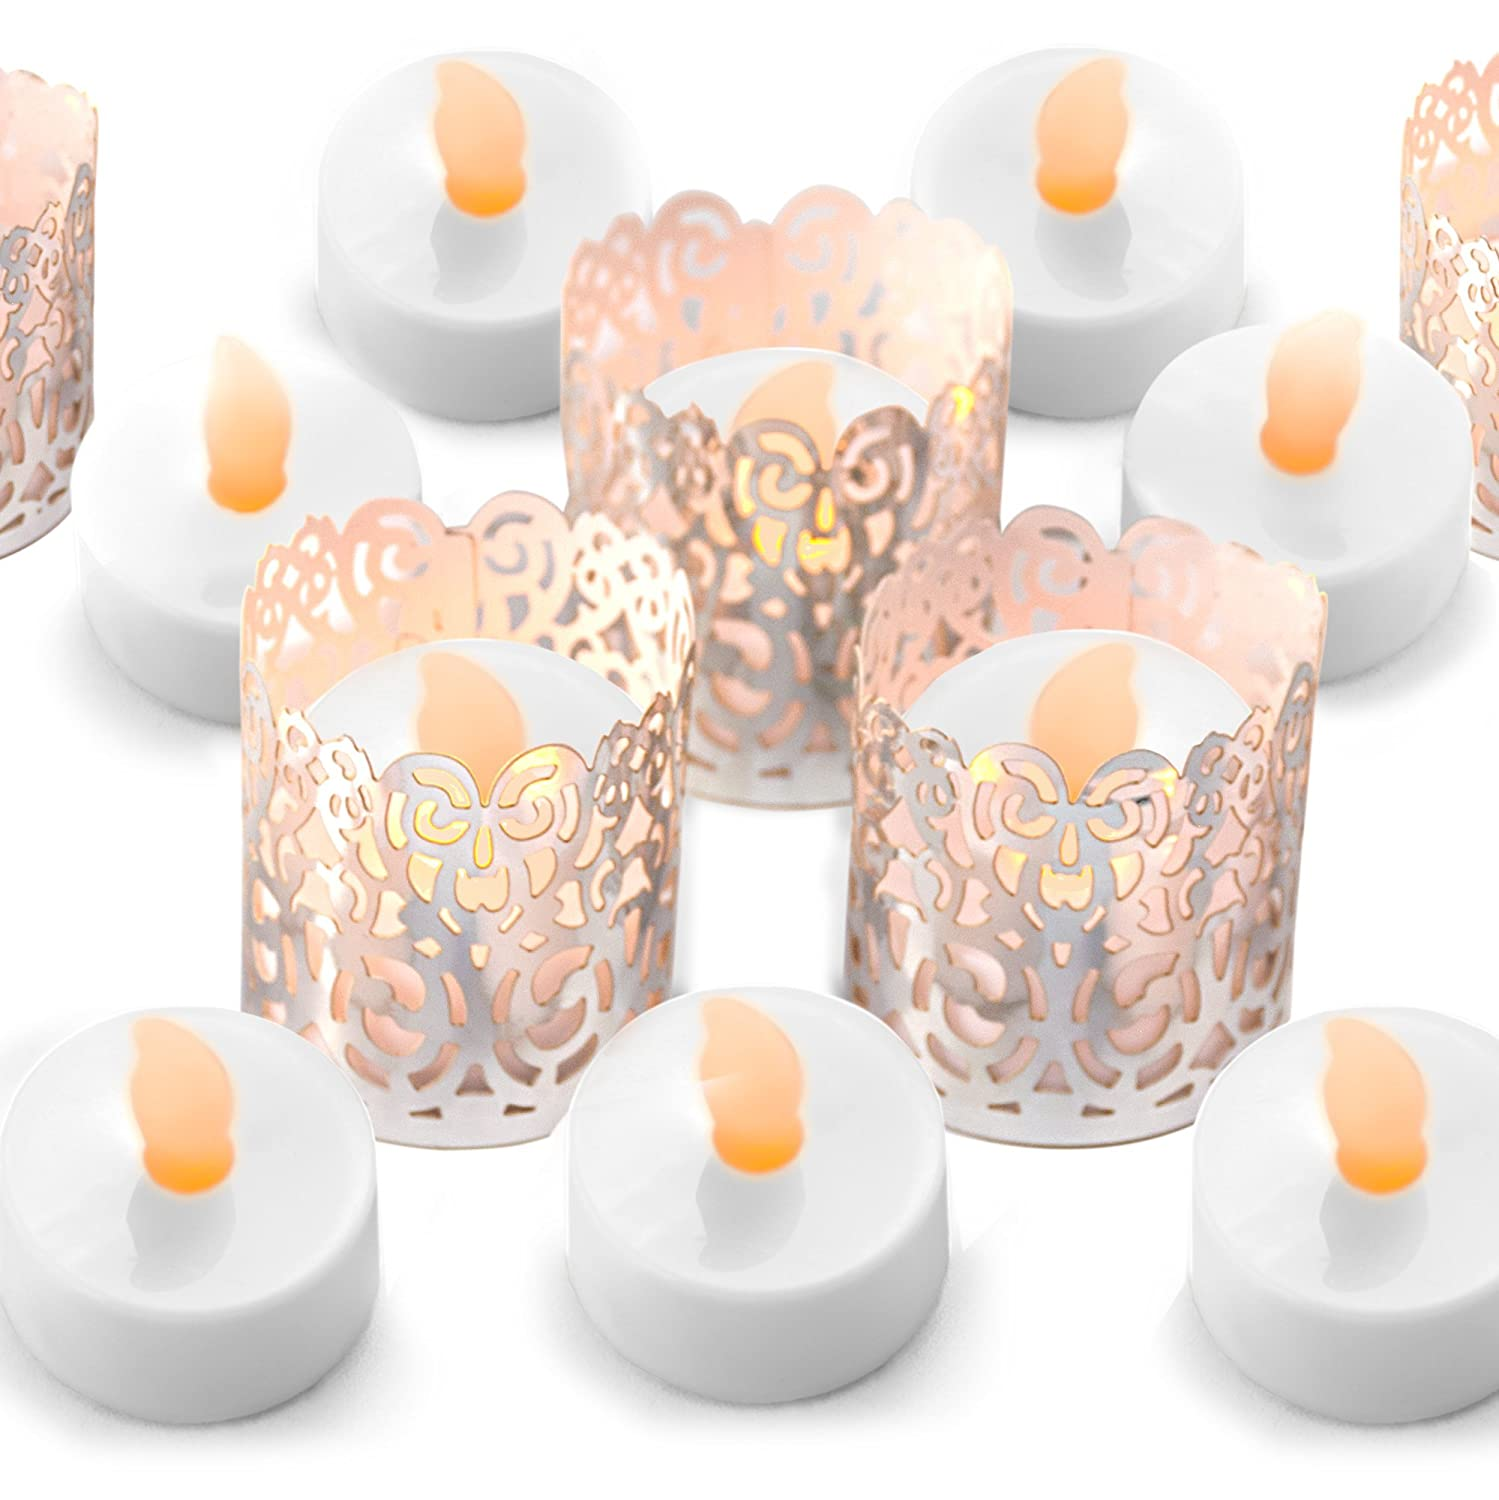 Frux Home and Yard FLAMELESS Tea Light Set 24 Flickering LED Battery Tealight Candles Copper Decorative Votive Wraps Included